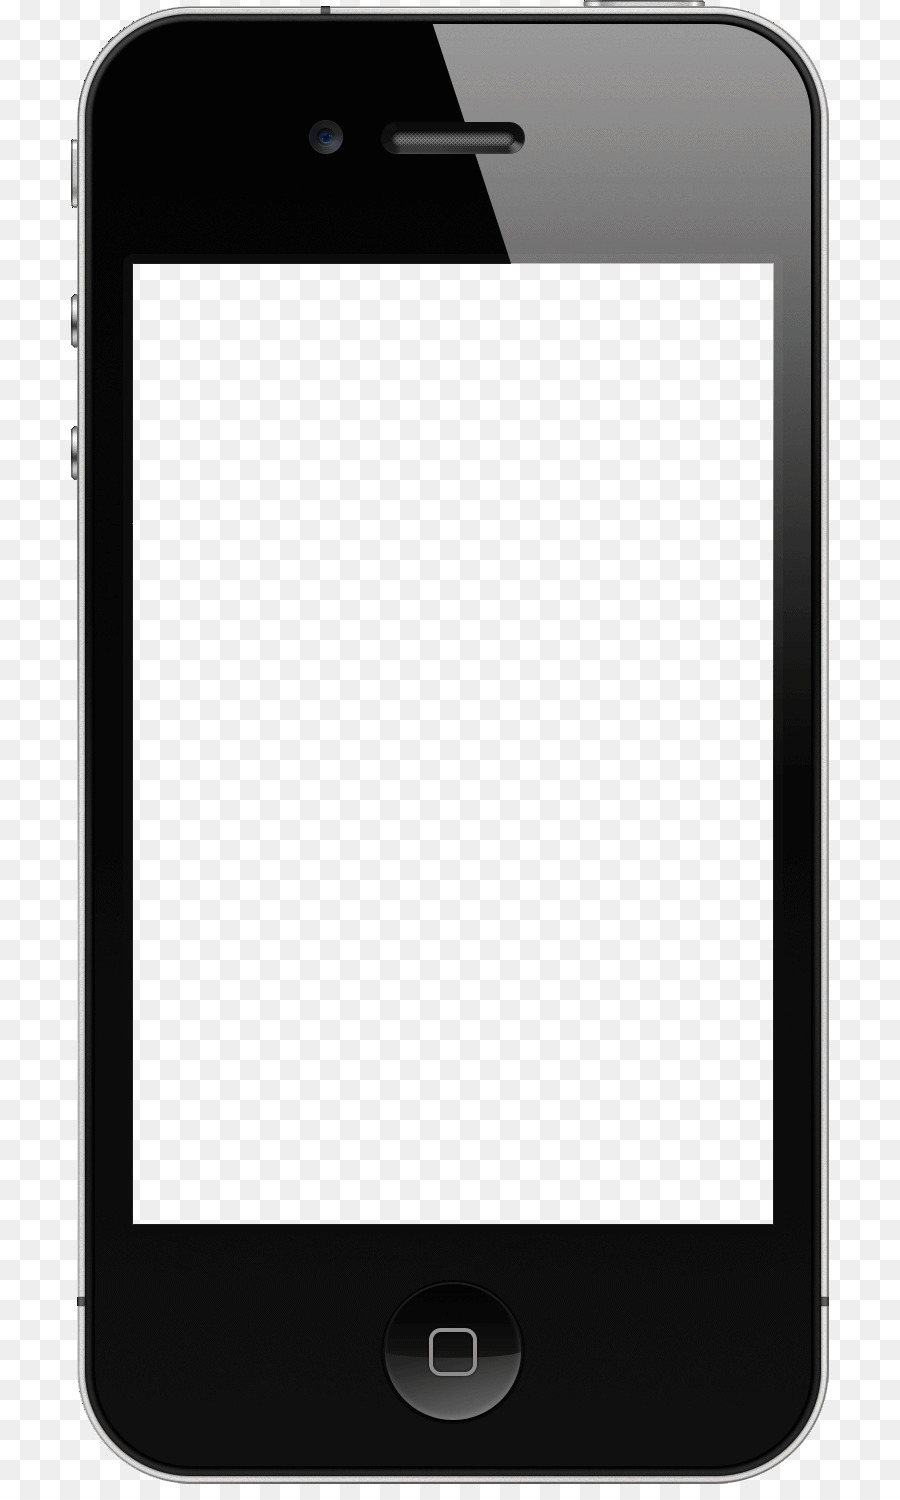 Library of smartphone transparent clipart black and white ...